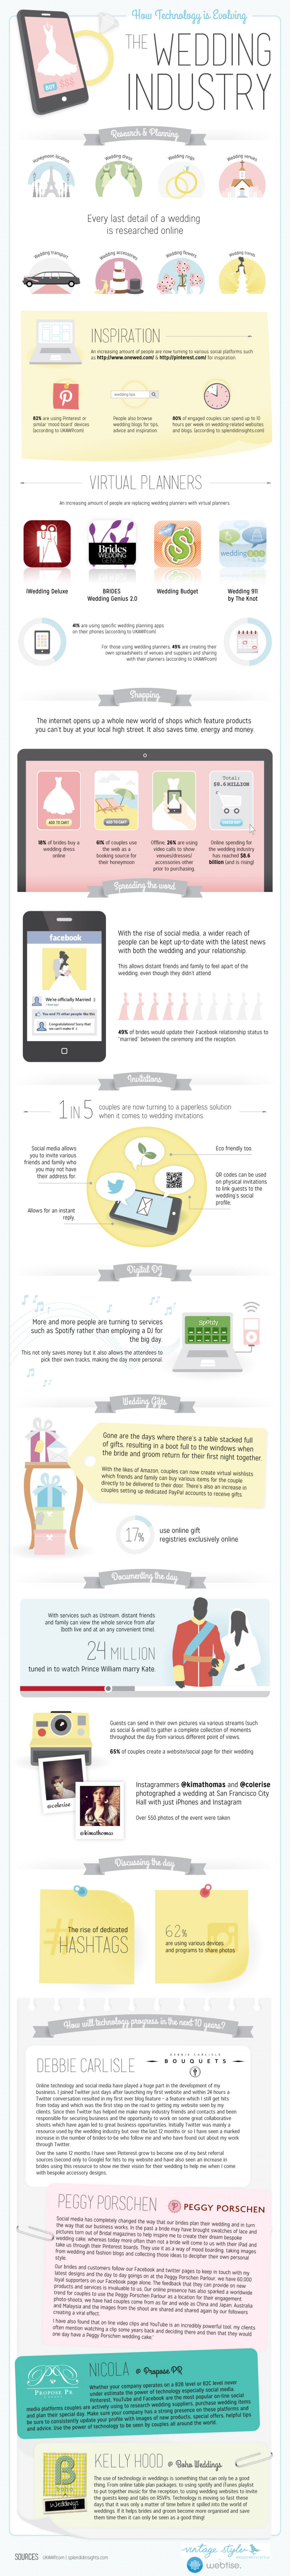 How Technology Is Evolving The Wedding Industry Infographic